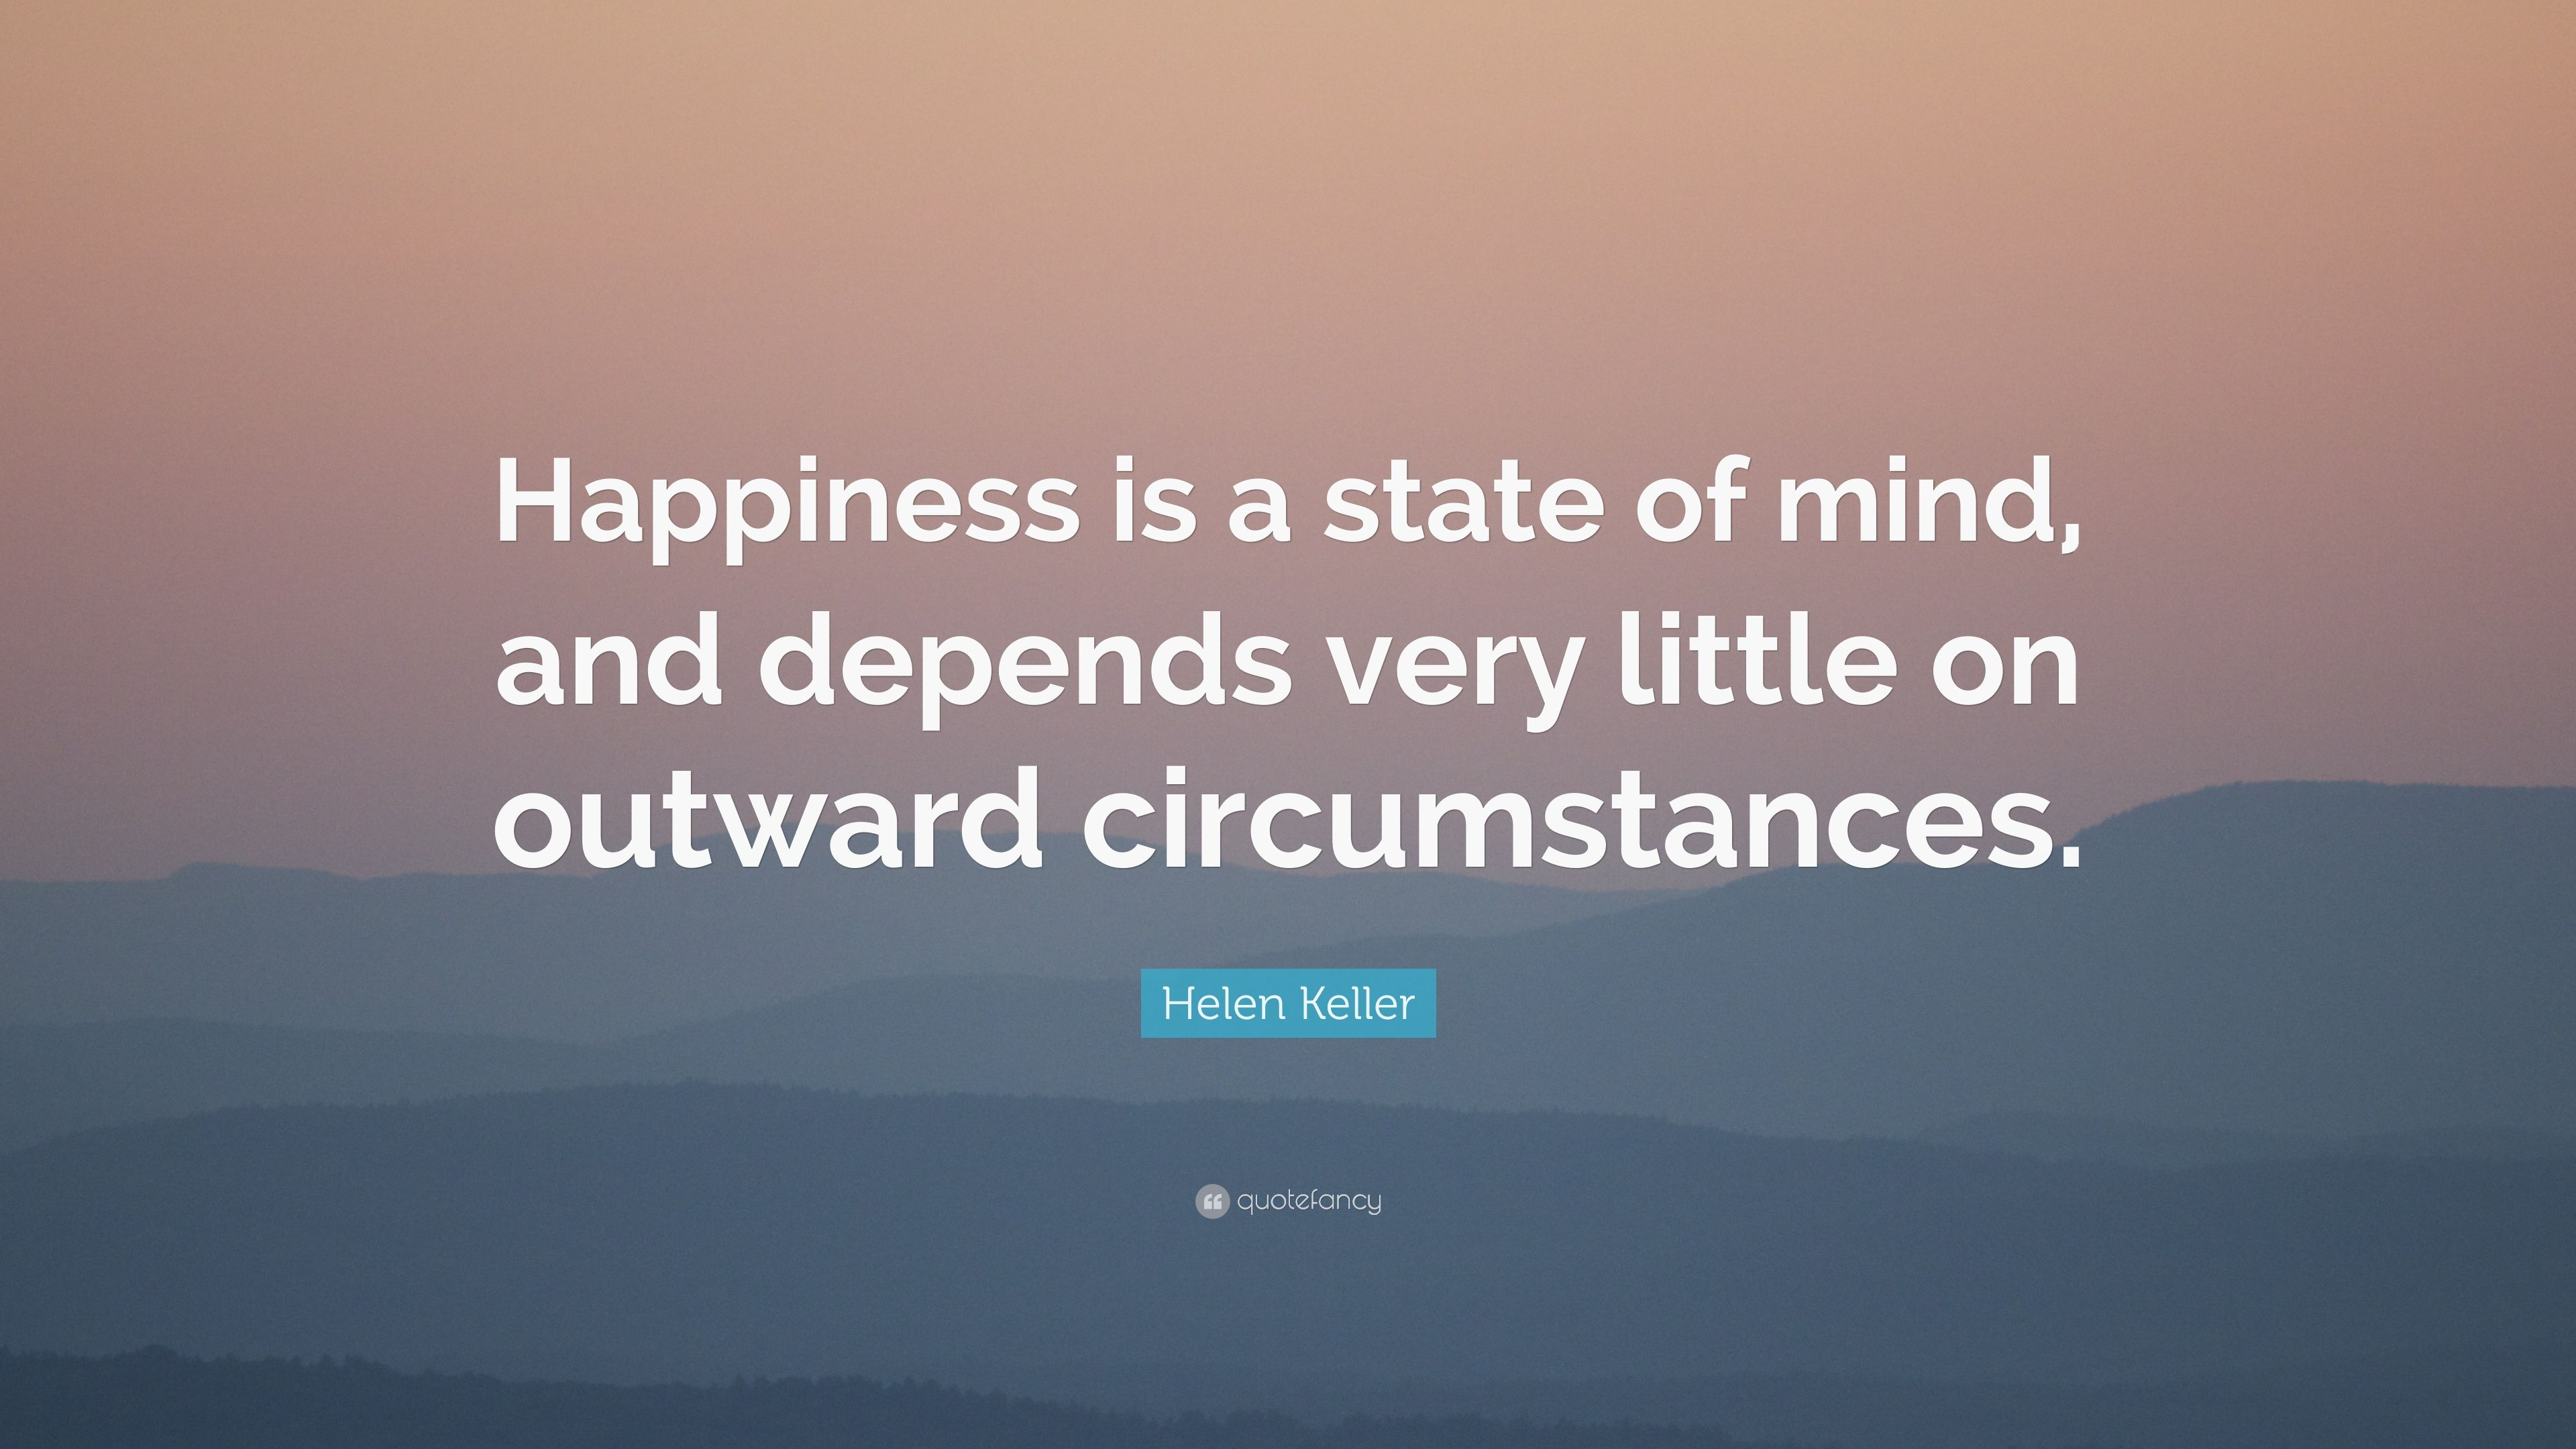 Quotes To Make You Happy Nice Quotes About Happiness That Will Make You Happy  Happy